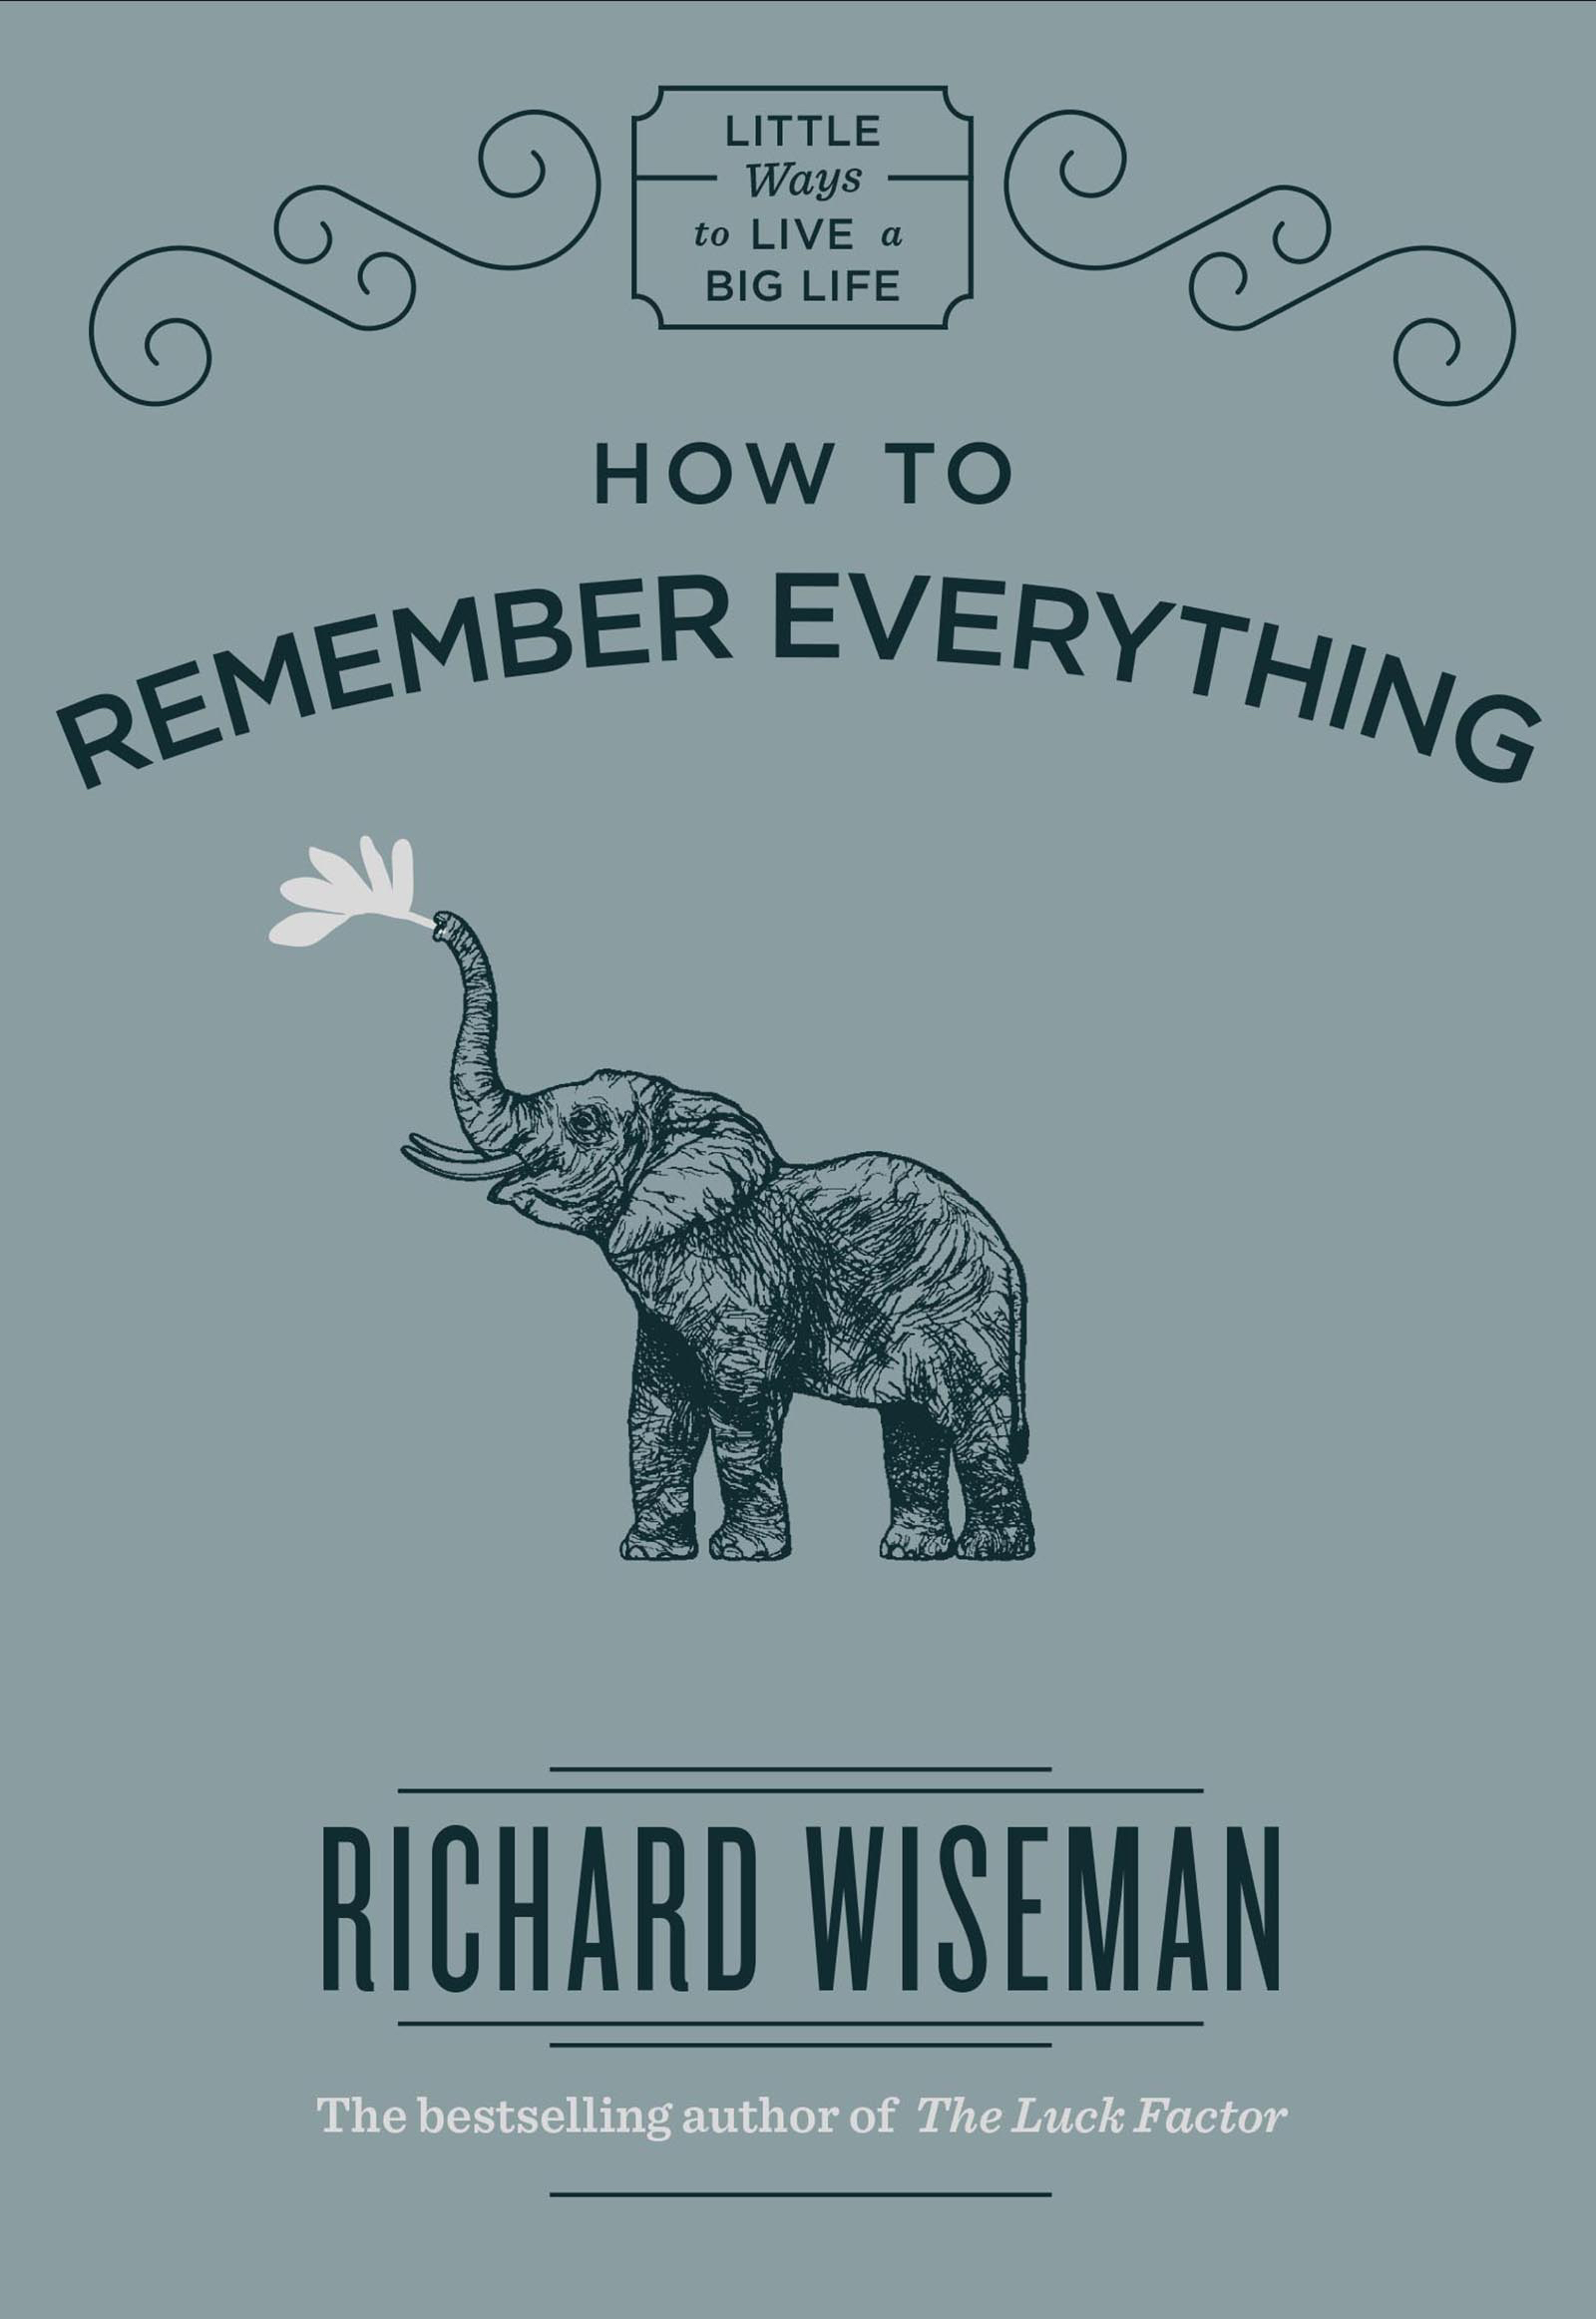 How to Remember Ever...